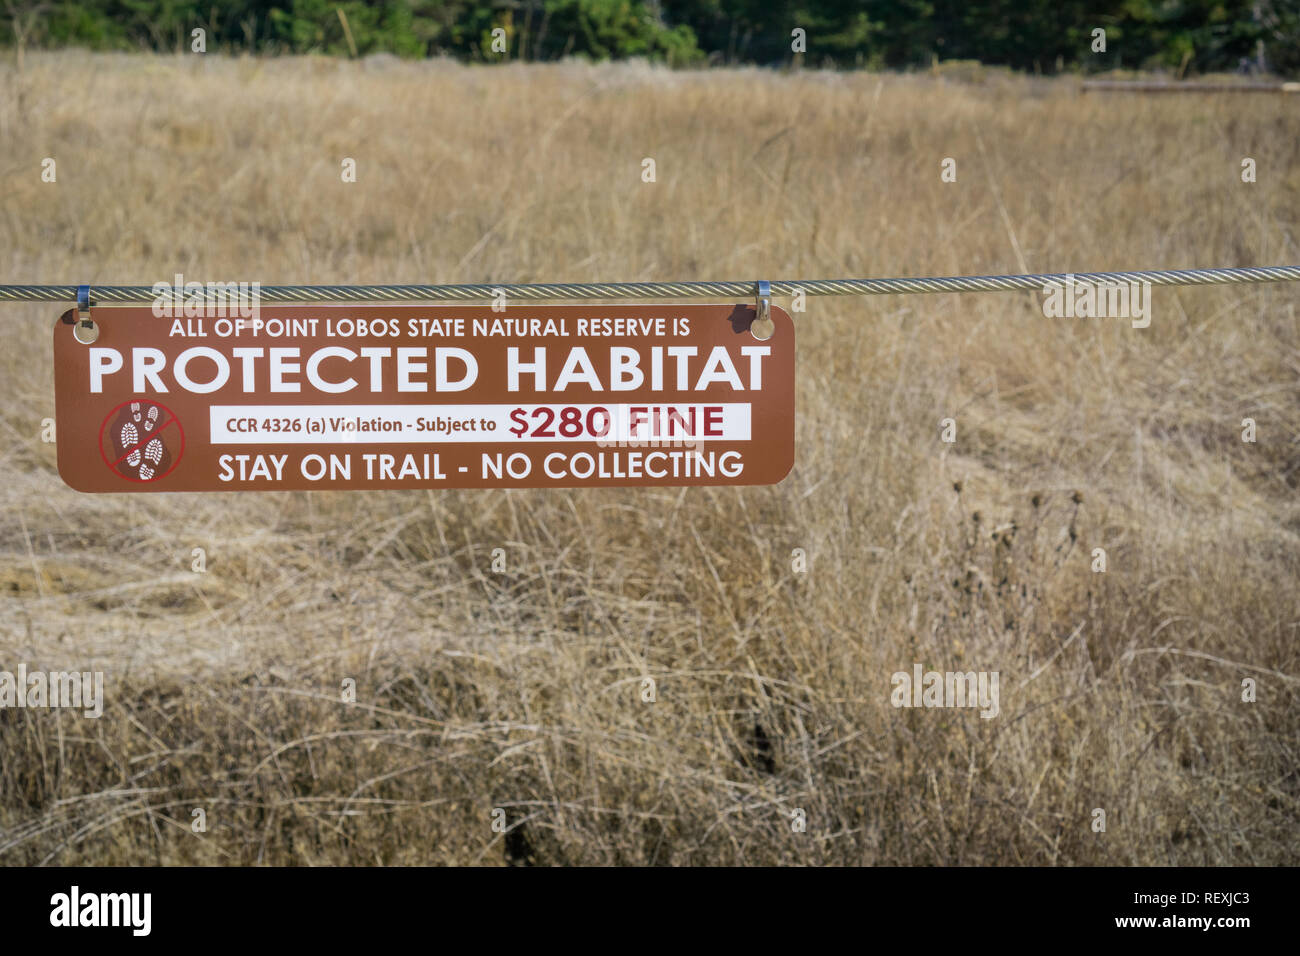 November 5, 2017 Carmel-By-The-Sea/USA - 'Protected Habitat, Stay on trail - no collecting' sign in Point Lobos Stare Reserve, a marine reserve near M - Stock Image